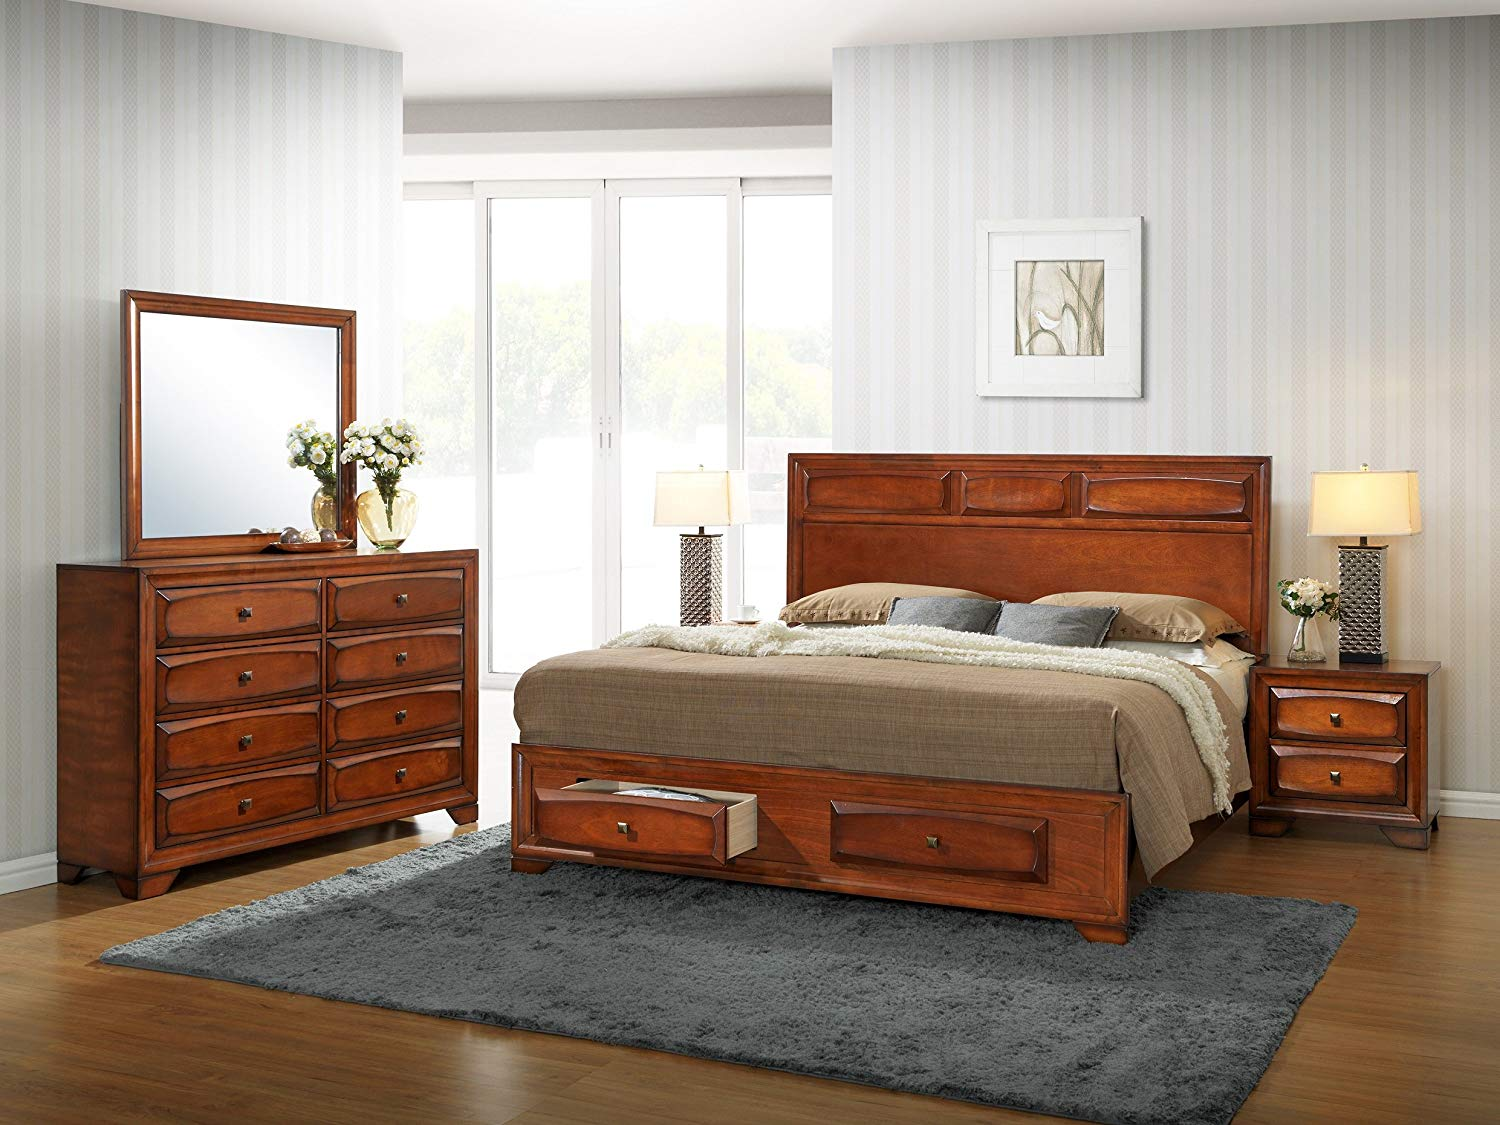 Roundhill Furniture B139KDMN2 Oakland 139 Antique Oak Finish Wood King Bedroom Set